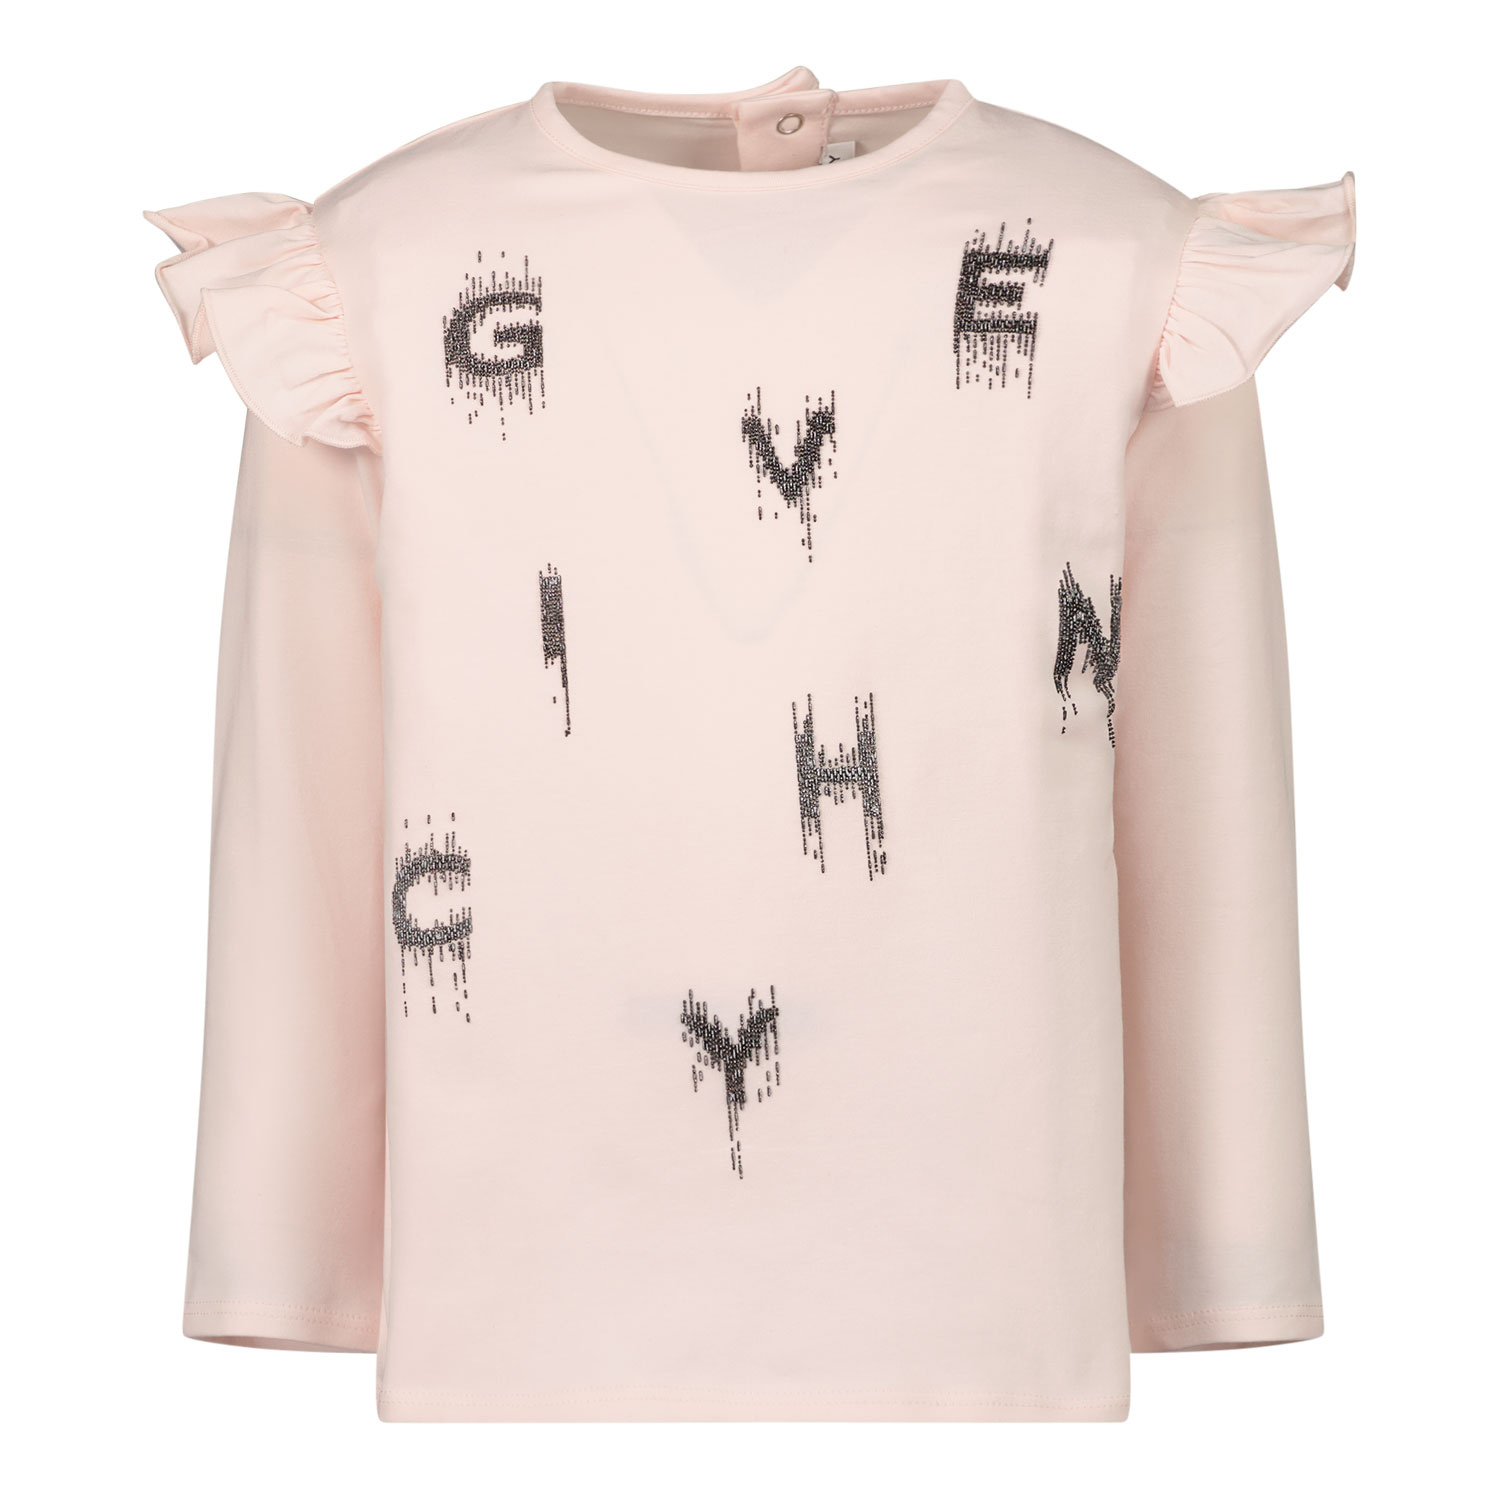 Afbeelding van Givenchy H05178 baby t-shirt licht roze